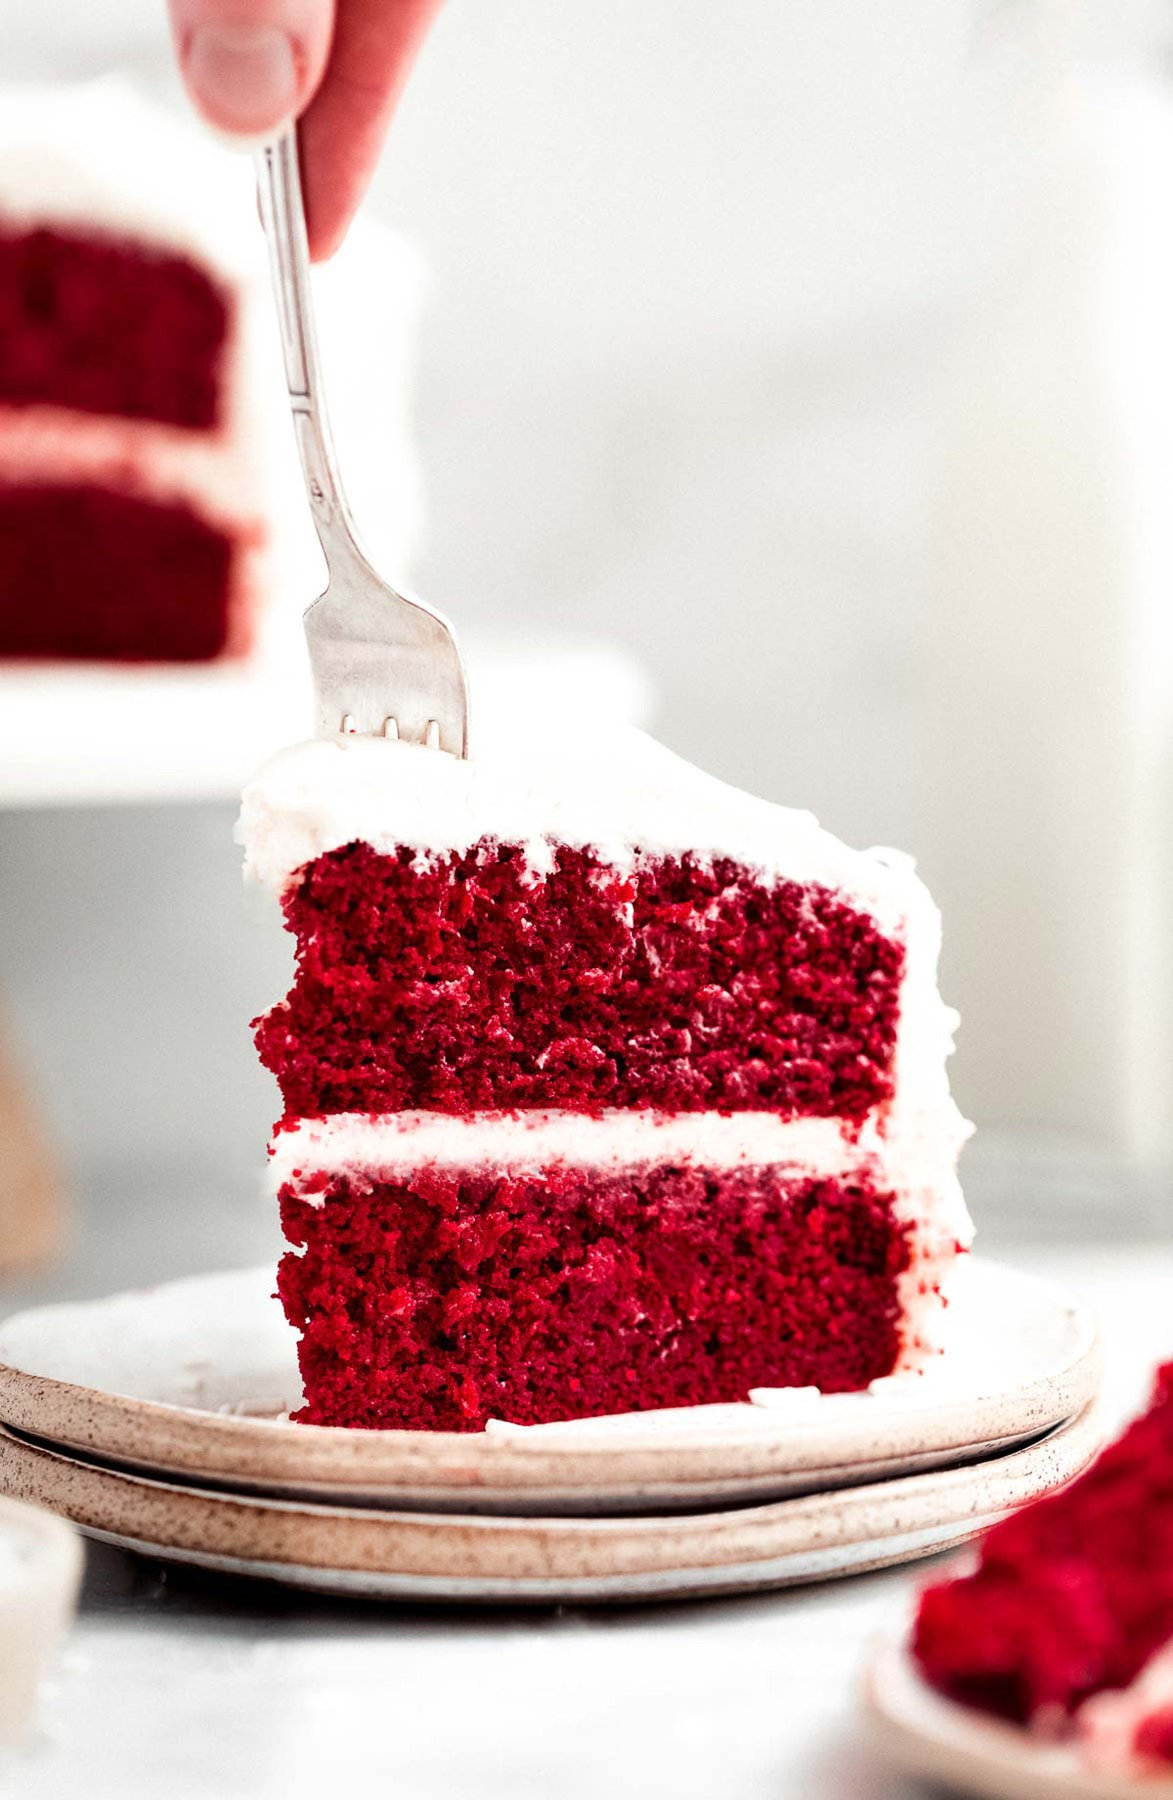 Gluten free red velvet layer cake with a fork taking a bite.